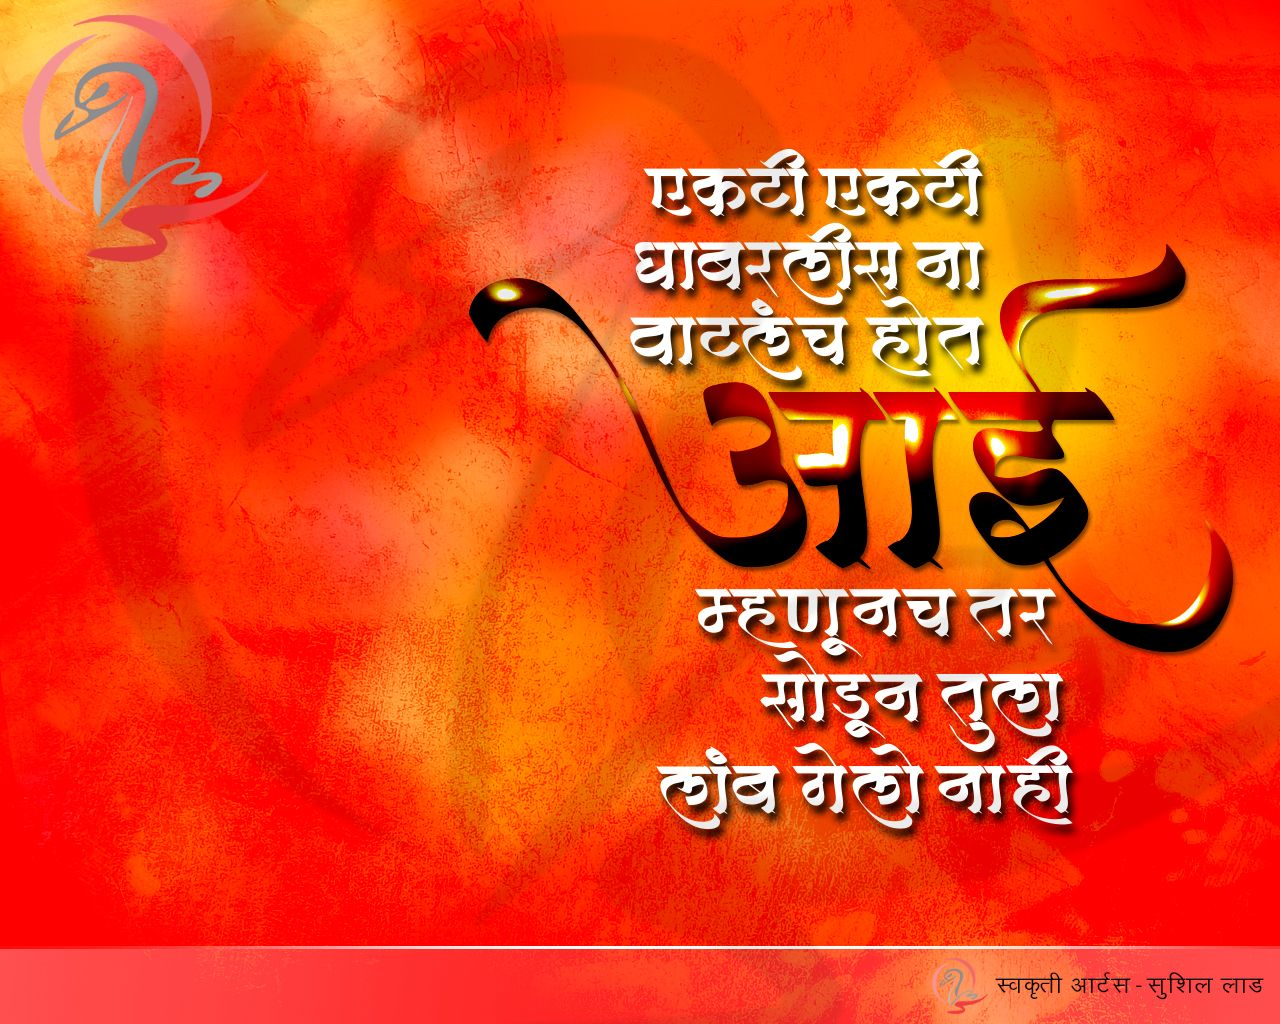 Pin By Sushil Lad On Marathi Calligraphy